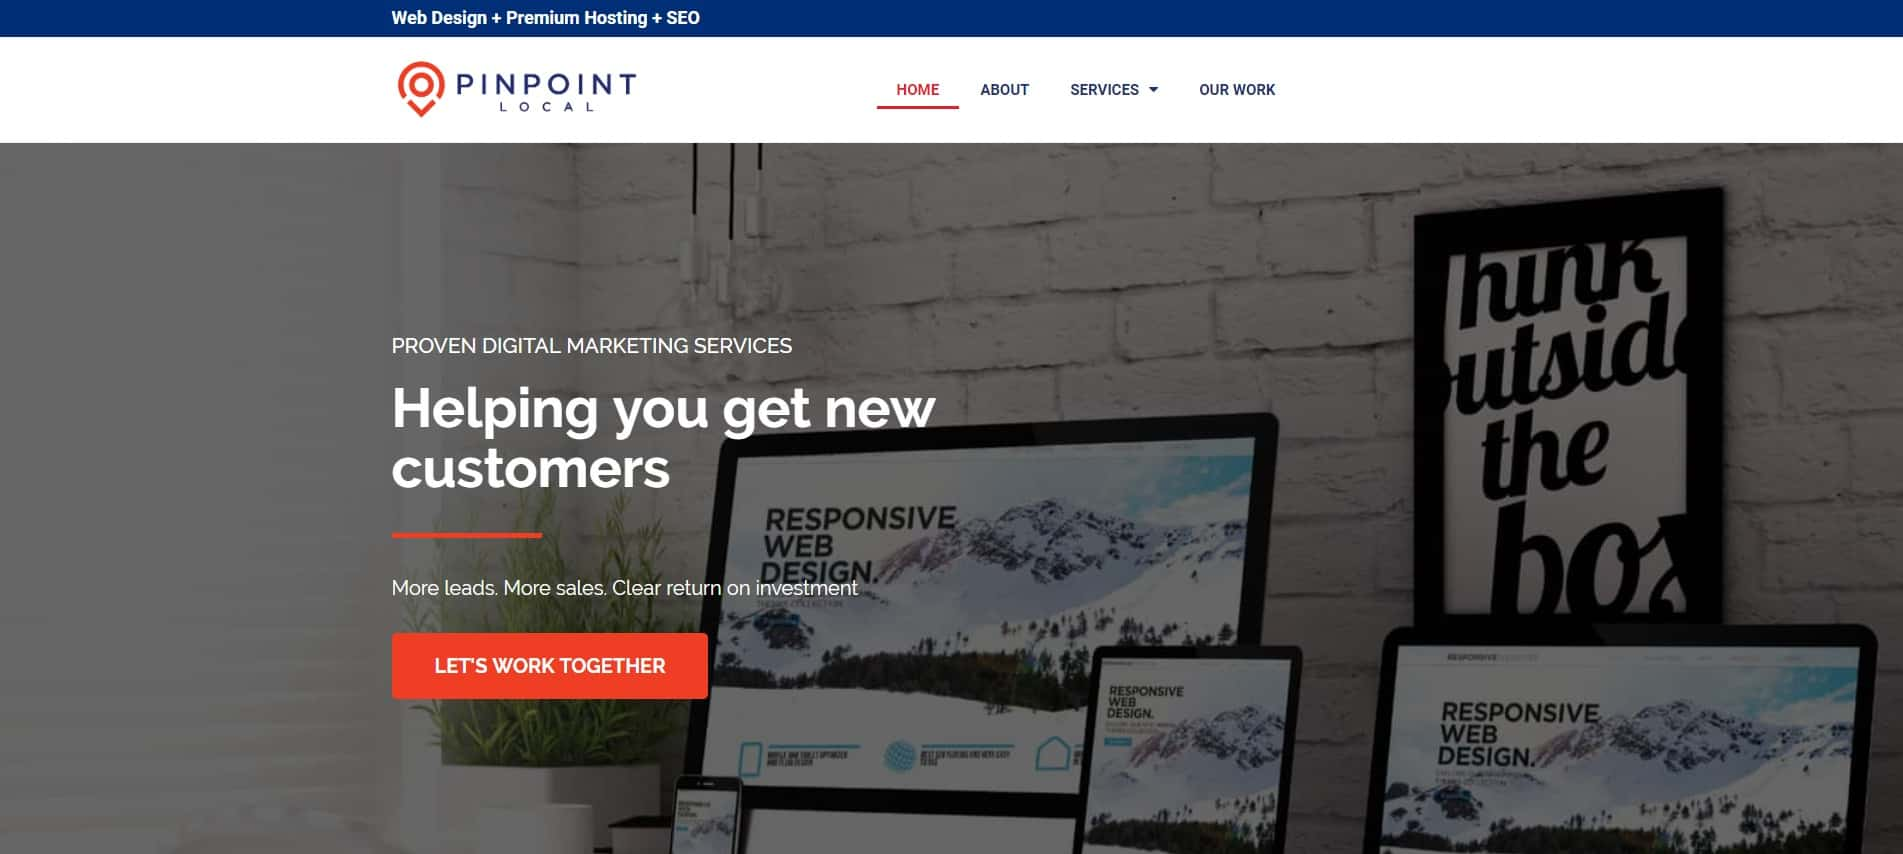 PinPoint Local | Web Design | Search Engine Optimization